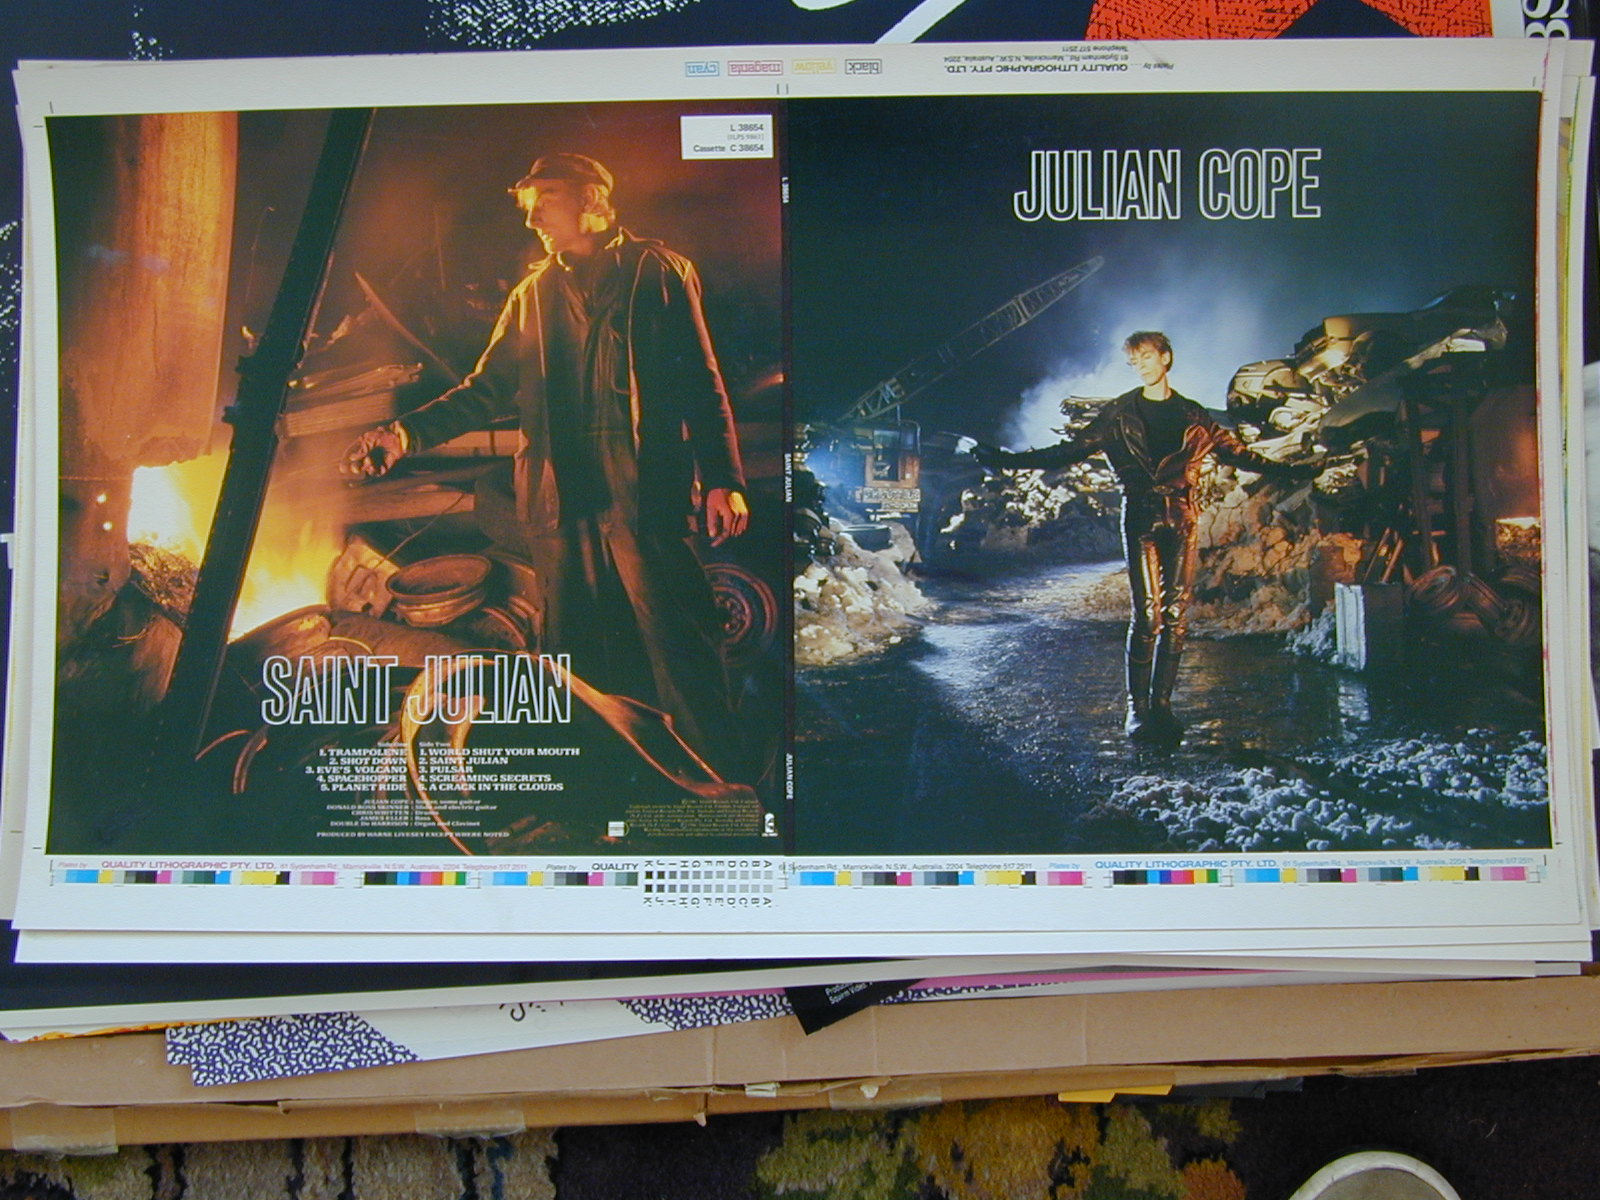 Untrimmed record sleeve - Julian Cope - Saint Julian